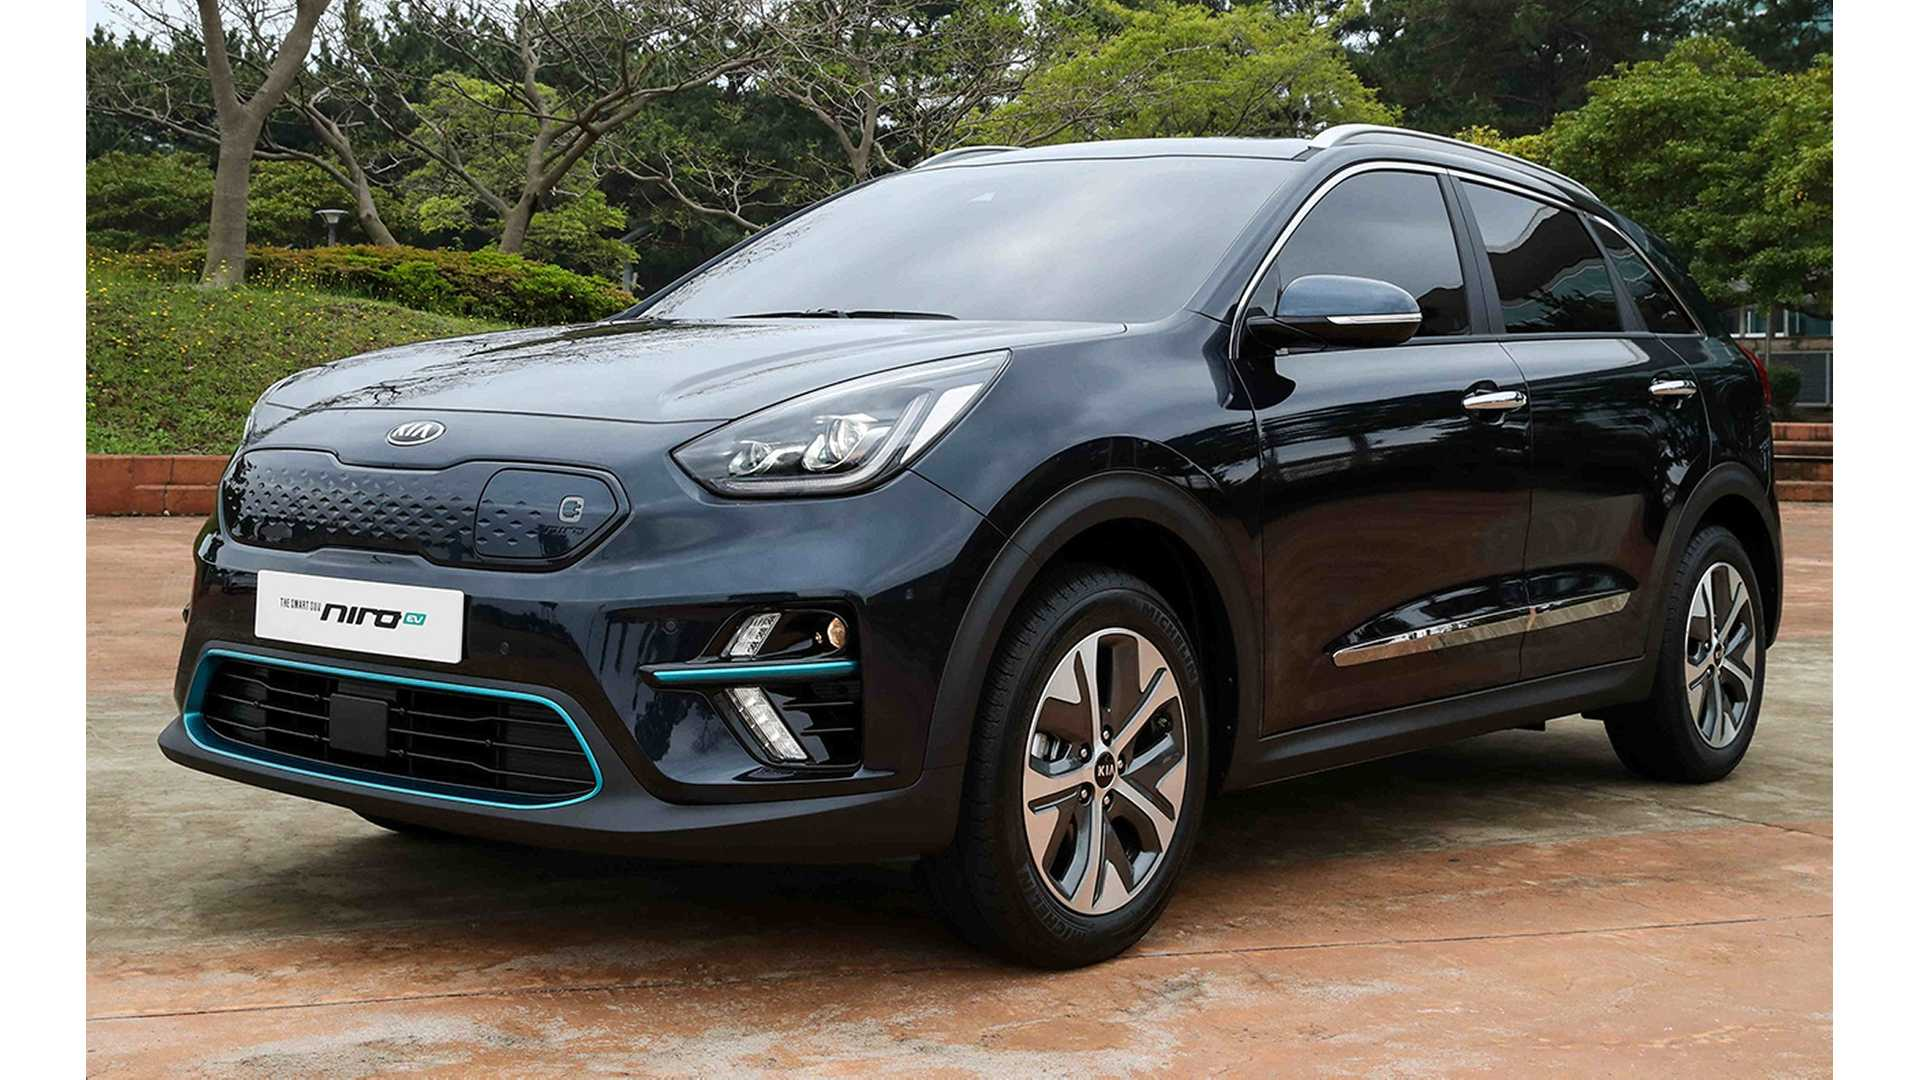 98 Great 2019 Kia Niro Ev Style with 2019 Kia Niro Ev